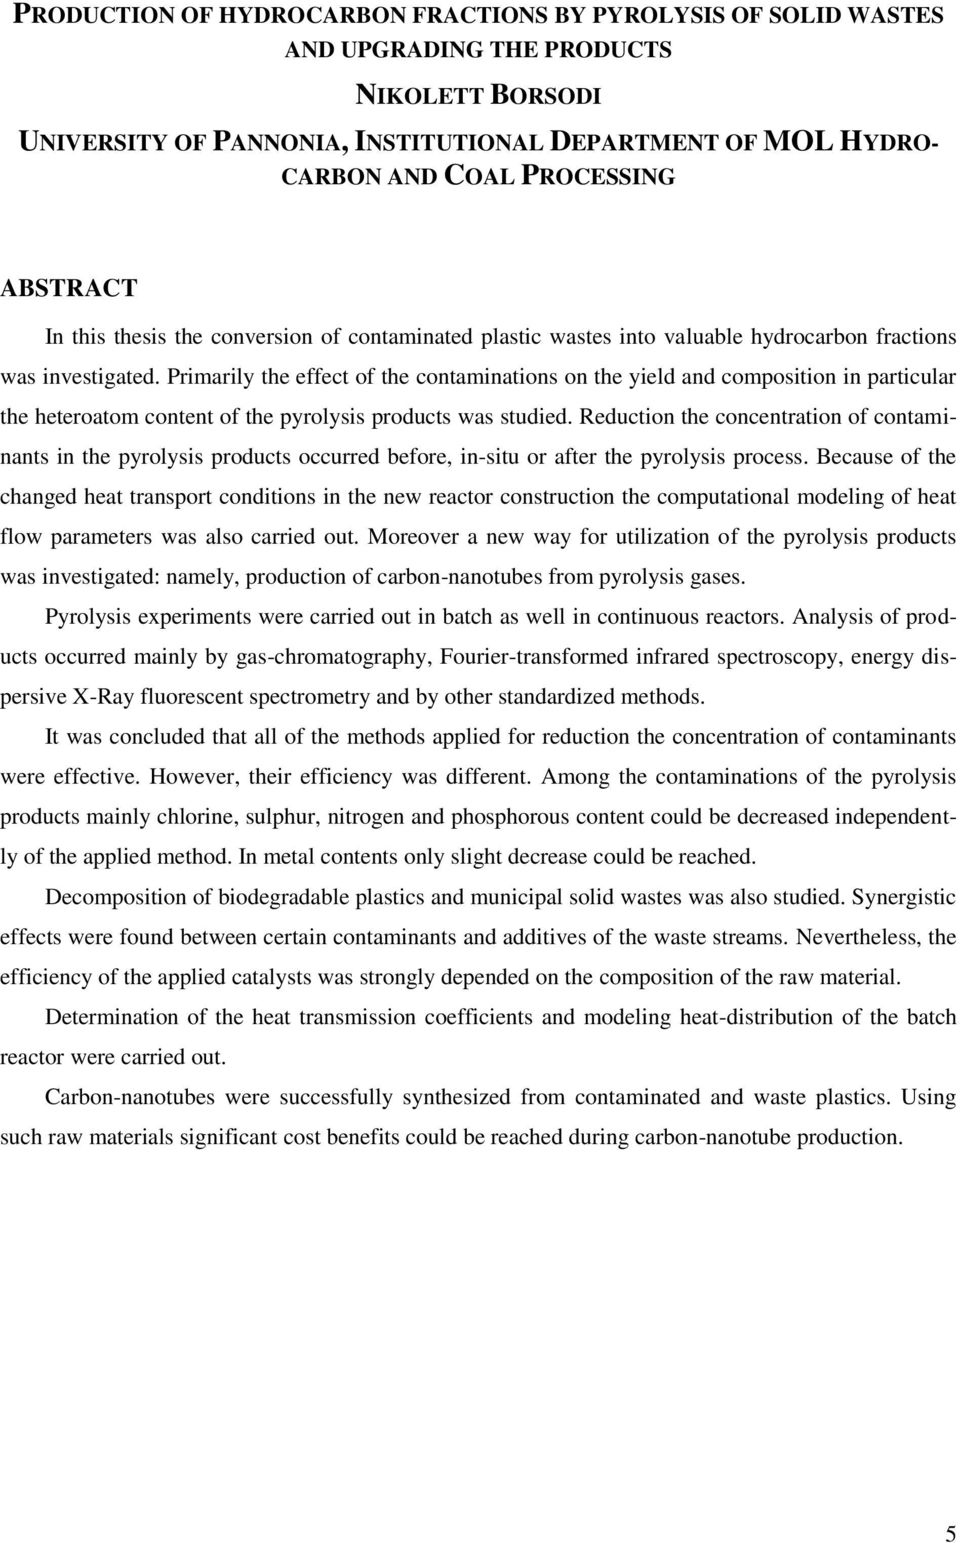 Primarily the effect of the contaminations on the yield and composition in particular the heteroatom content of the pyrolysis products was studied.